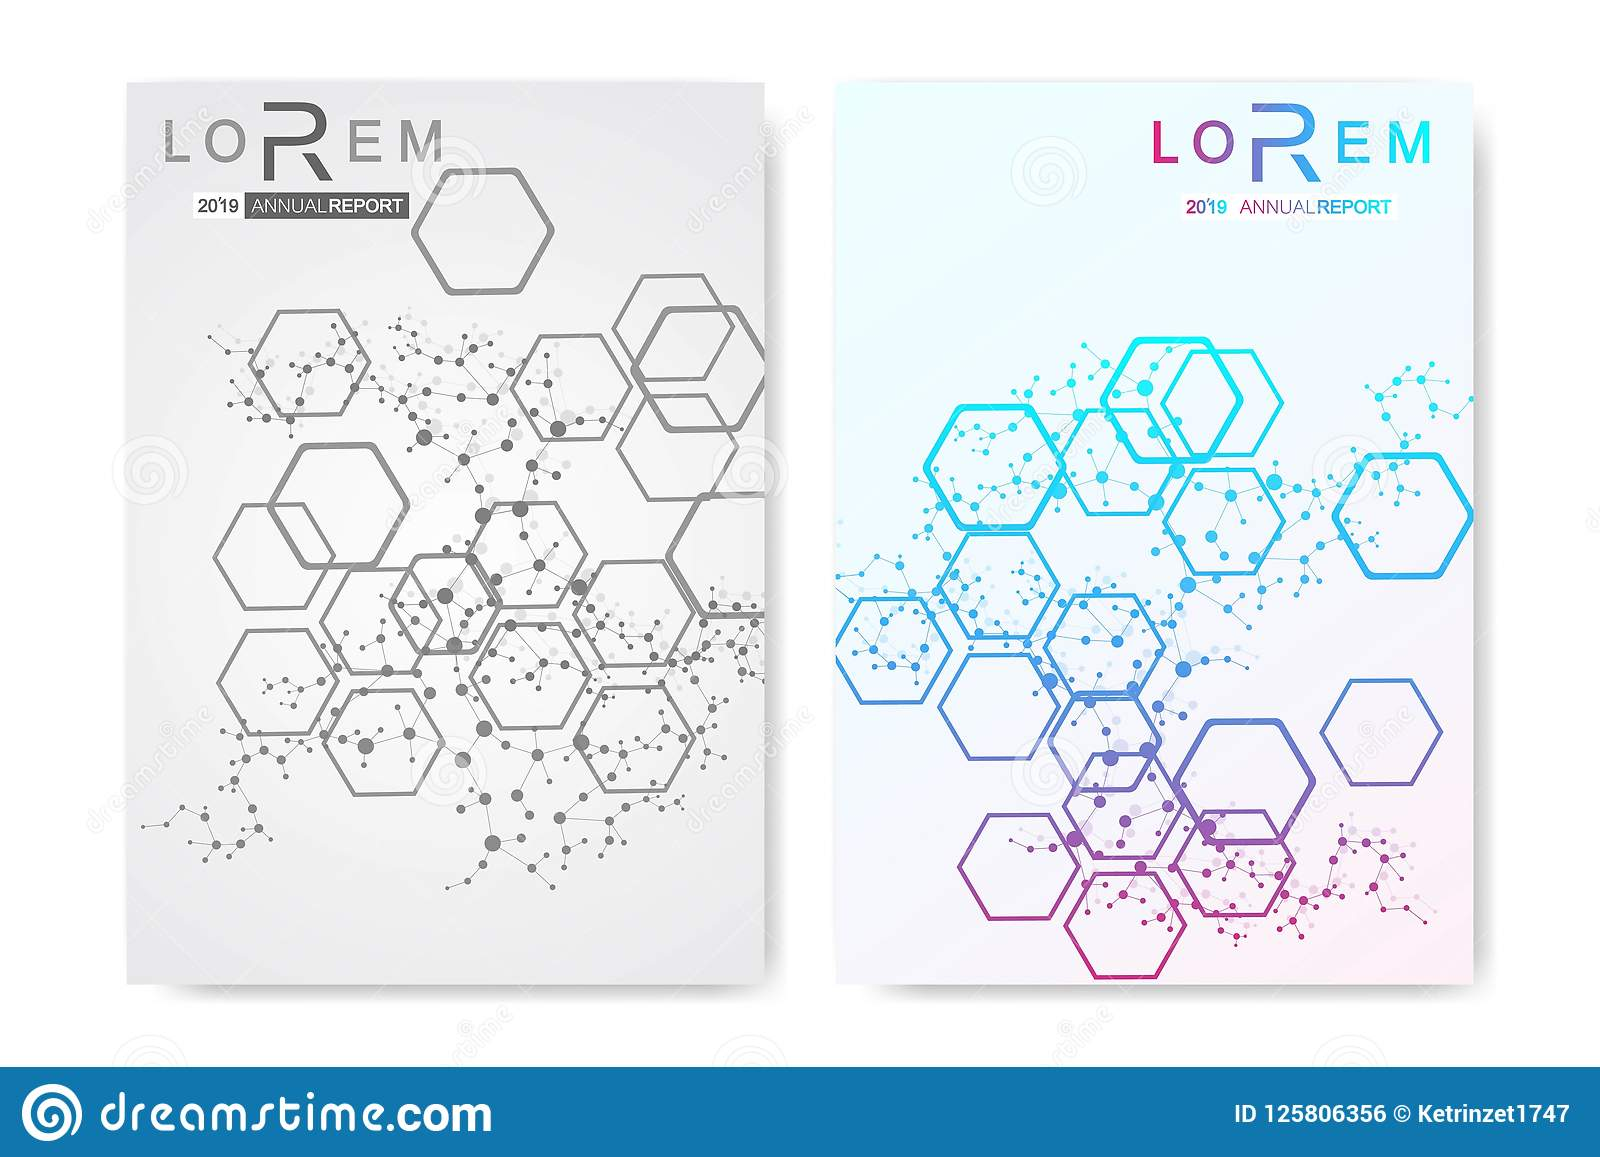 Minimal brochure templates, magazine, leaflet, flyer, cover, booklet, annual report, banner. Scientific concept for